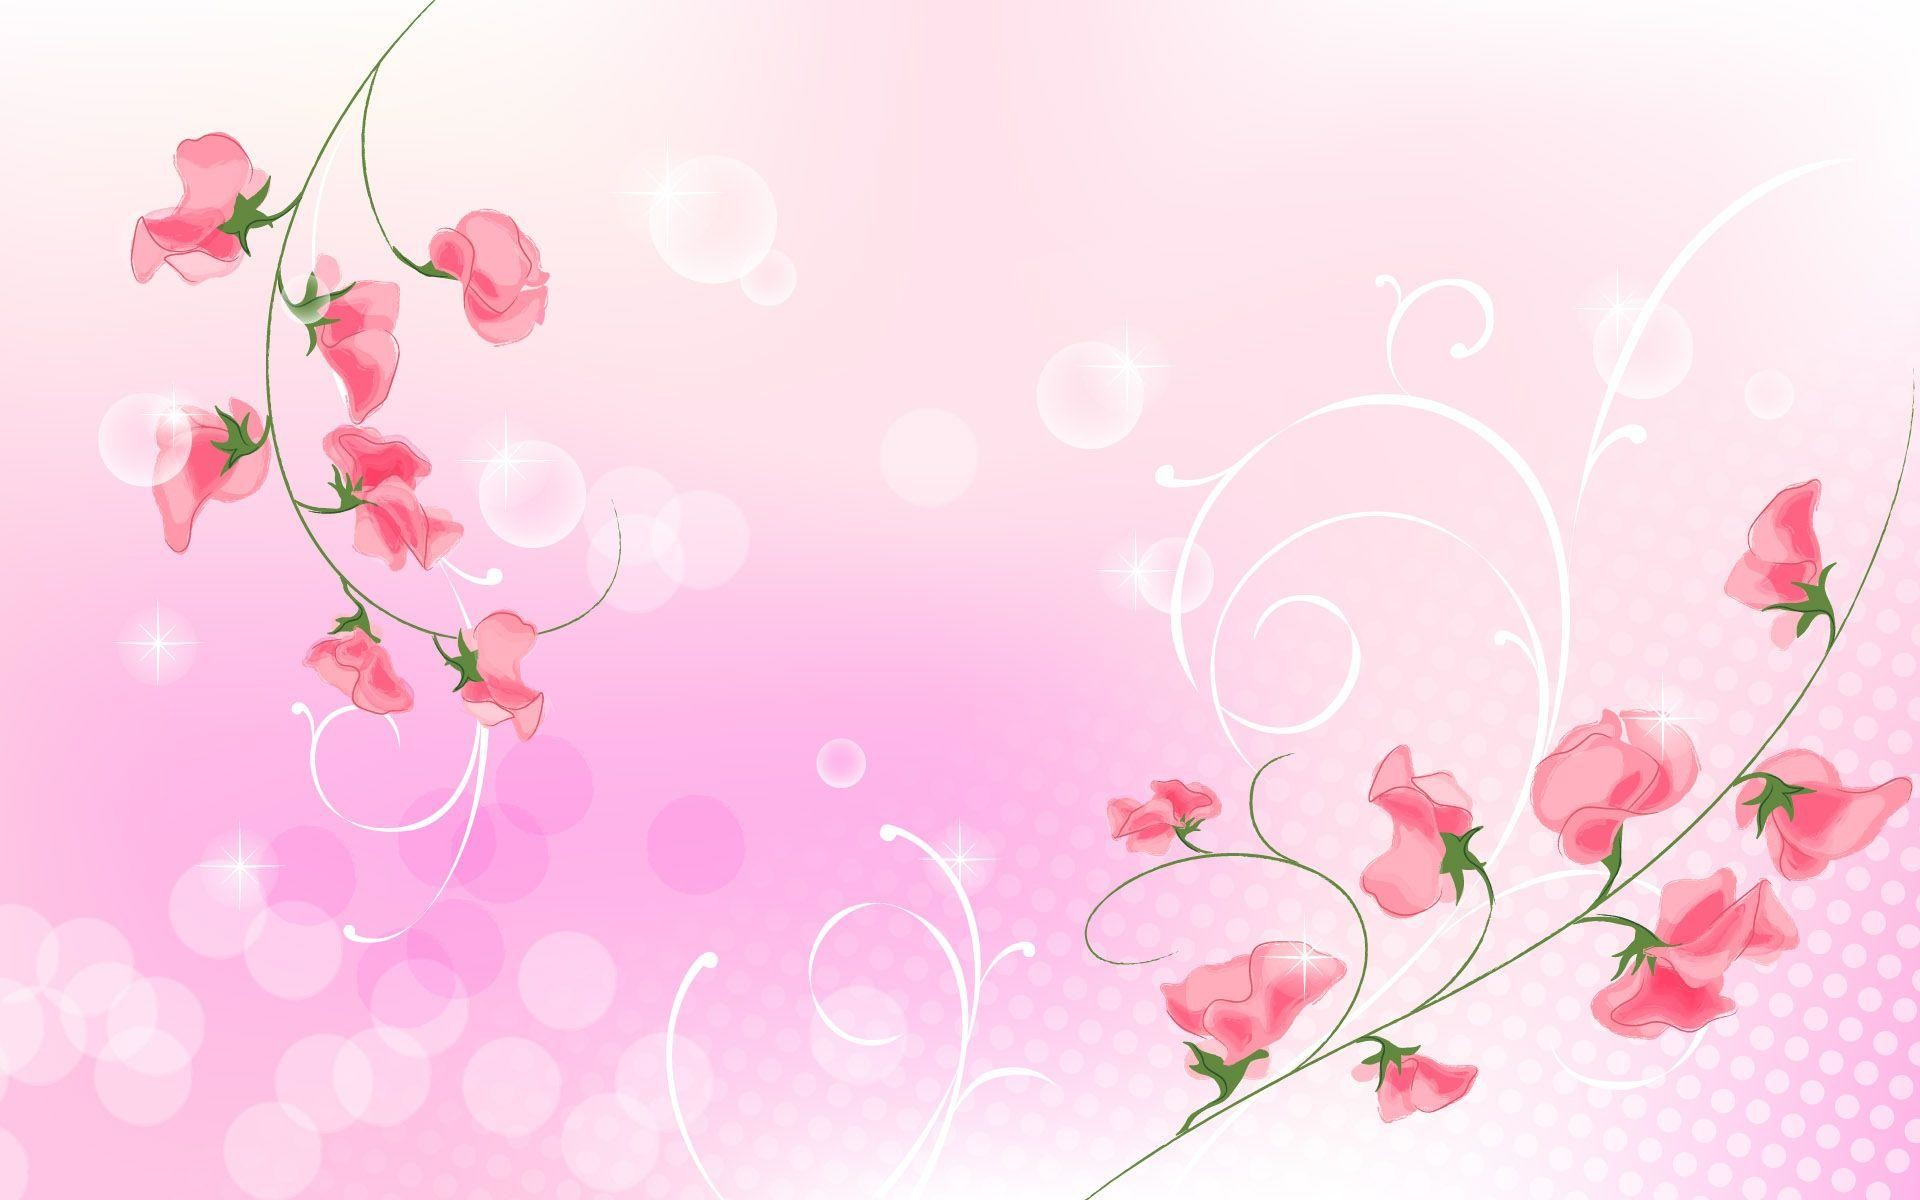 Light pink flower wallpaper 54 images 1920x1200 wallpapers for light pink flower wallpaper mightylinksfo